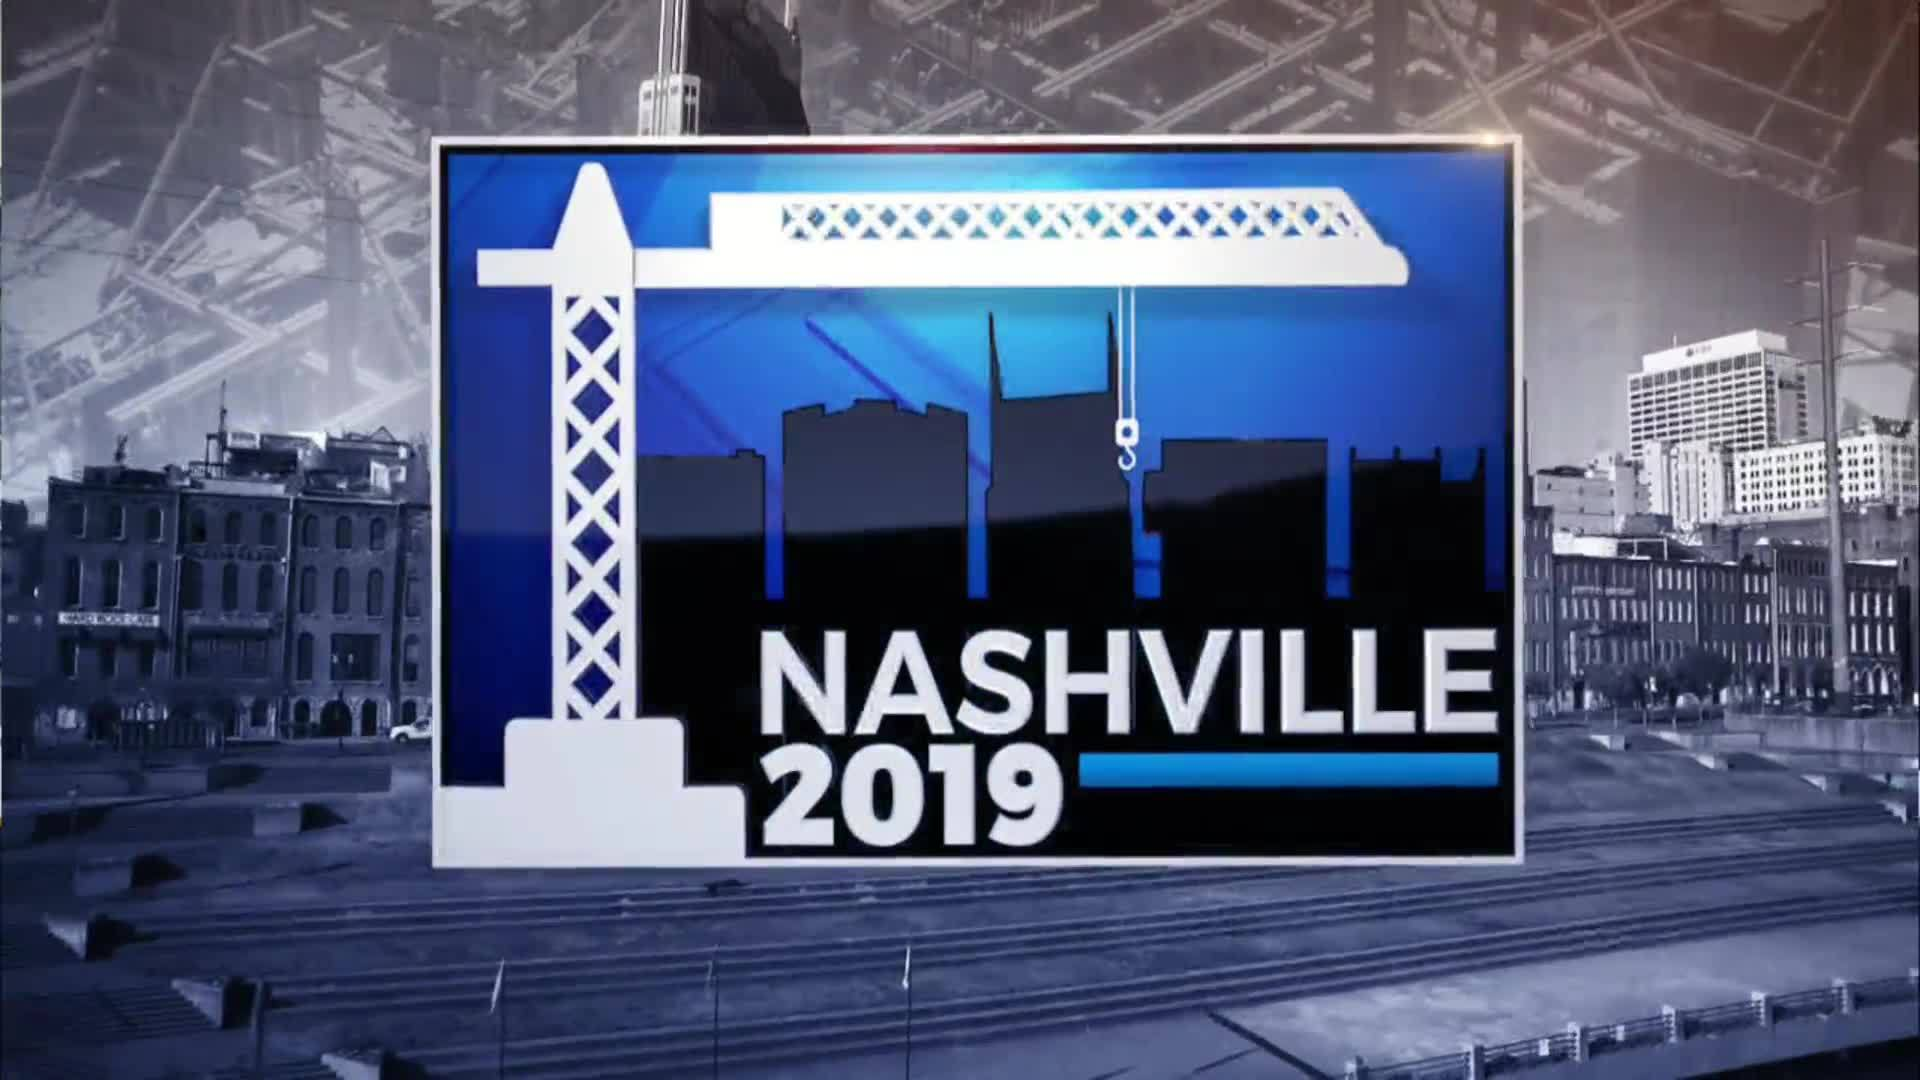 NASHVILLE_2019__Lots_of_progress_to_Nash_6_20190405221612